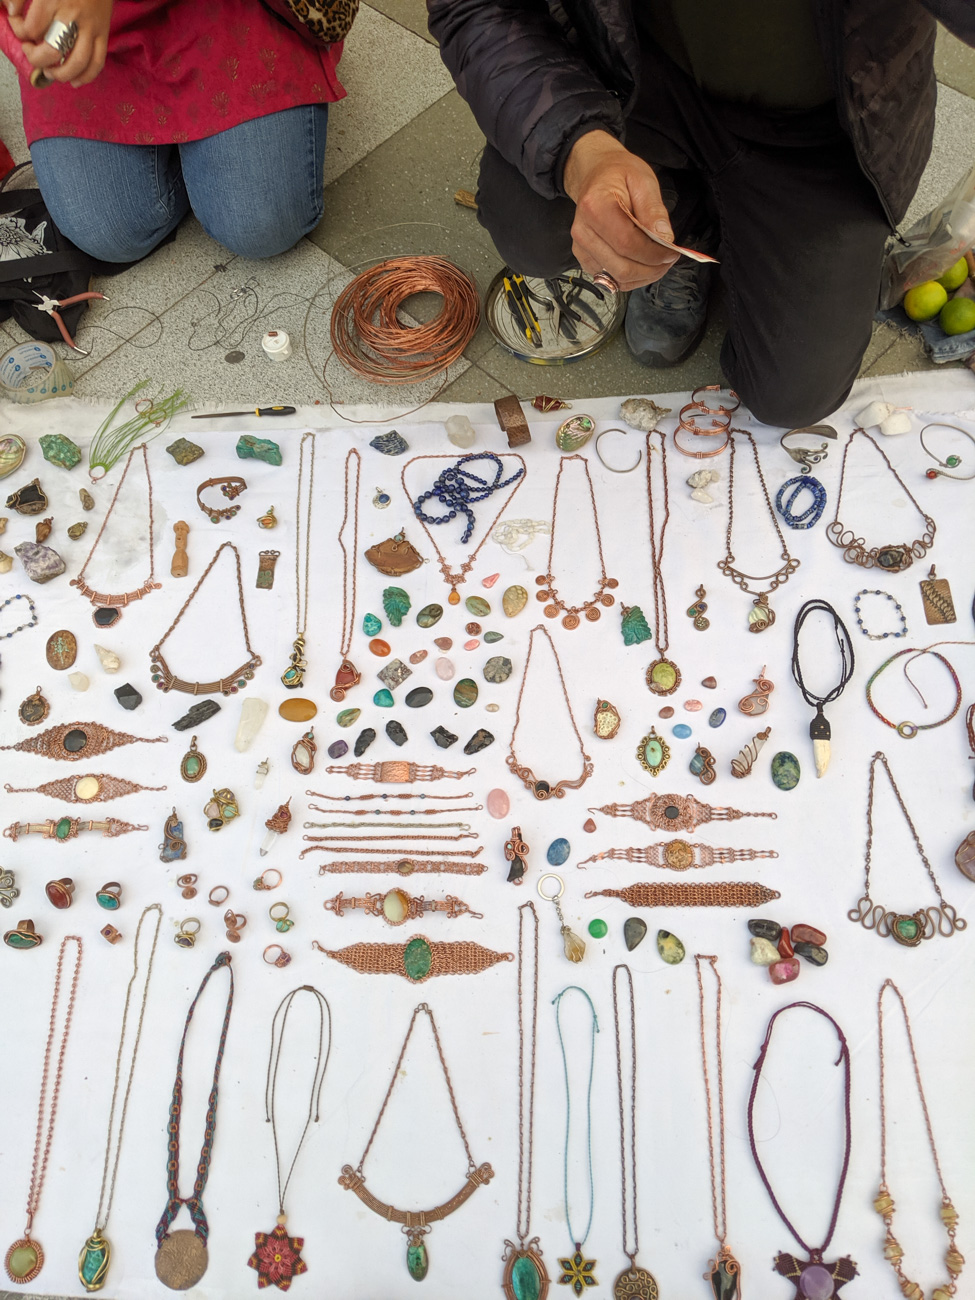 Handmade necklaces spread on a blanket, near a traveler with jewelry making supplies.